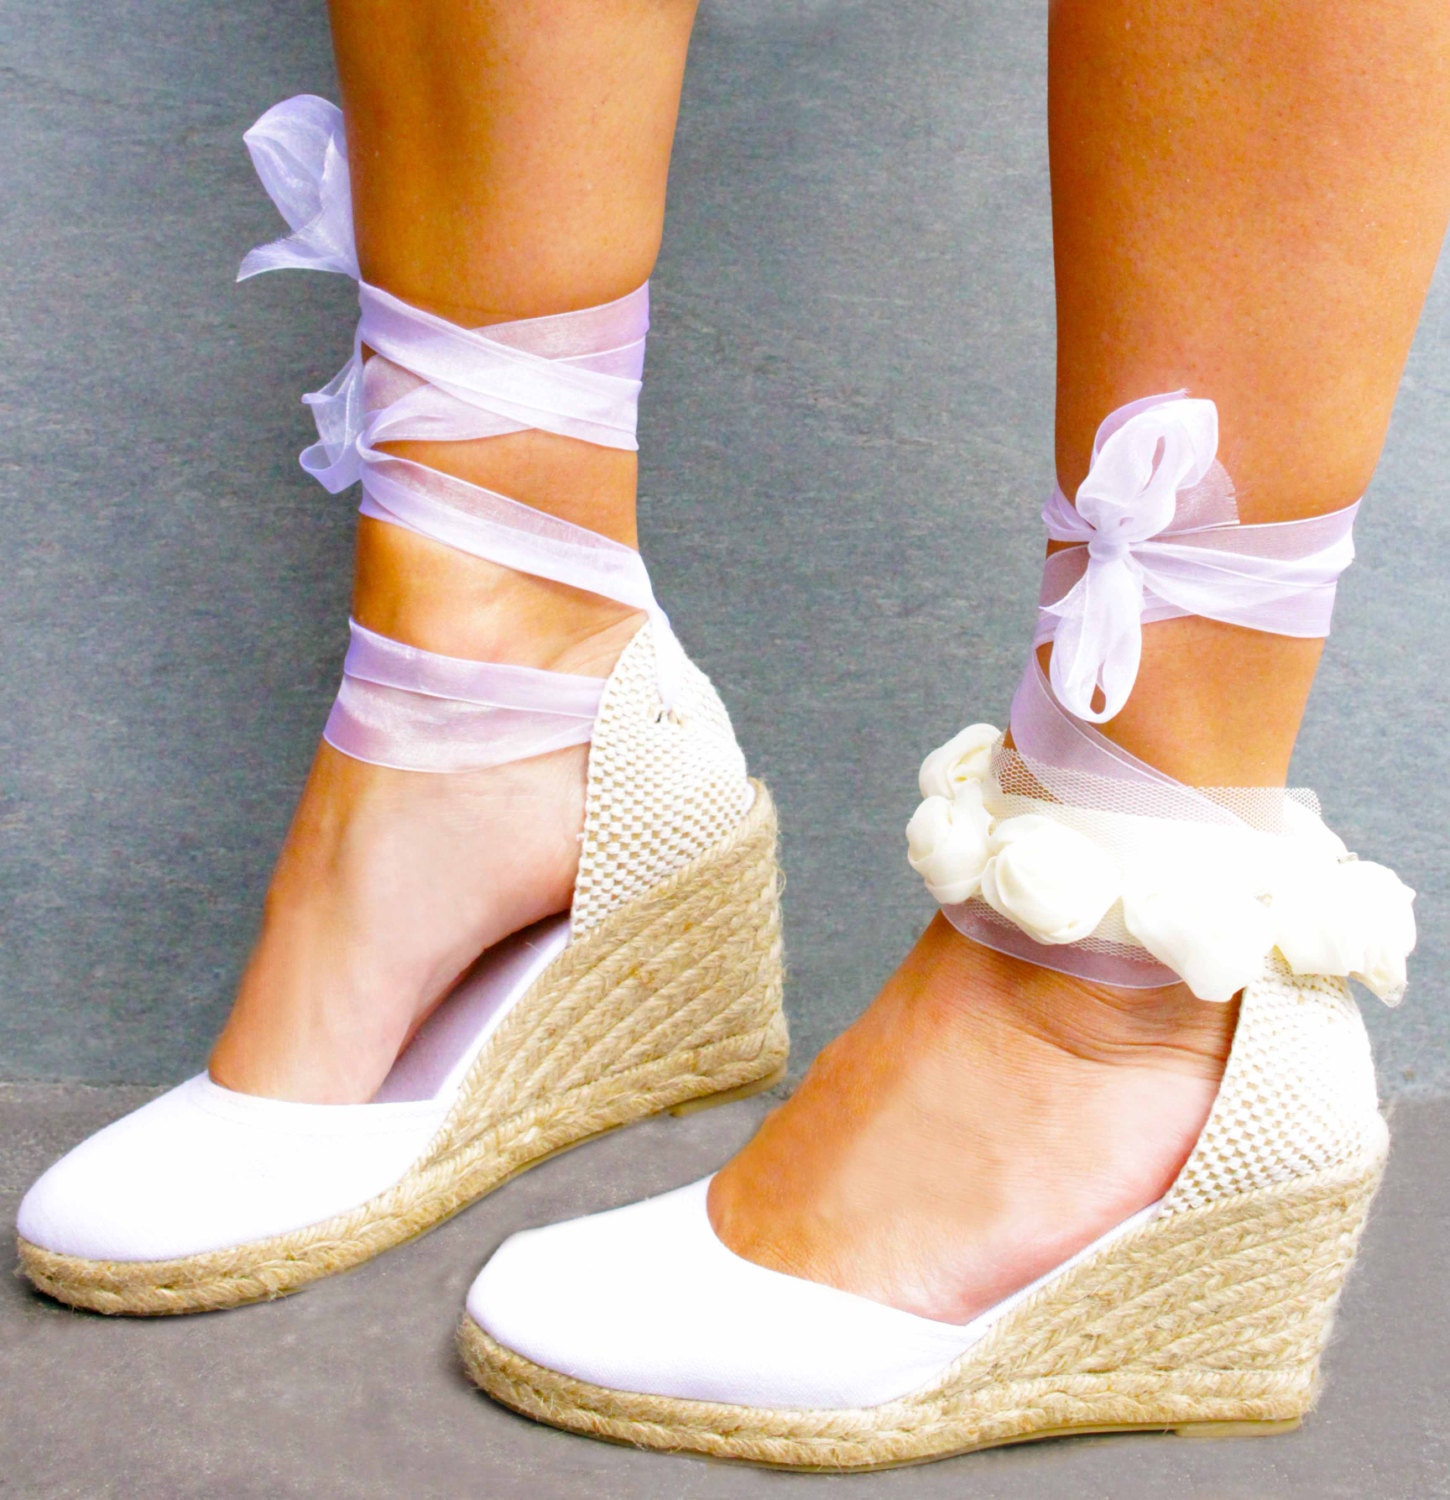 CHLOE Medium Wedge Lace Up Espadrilles Wedding Bridal Shoes